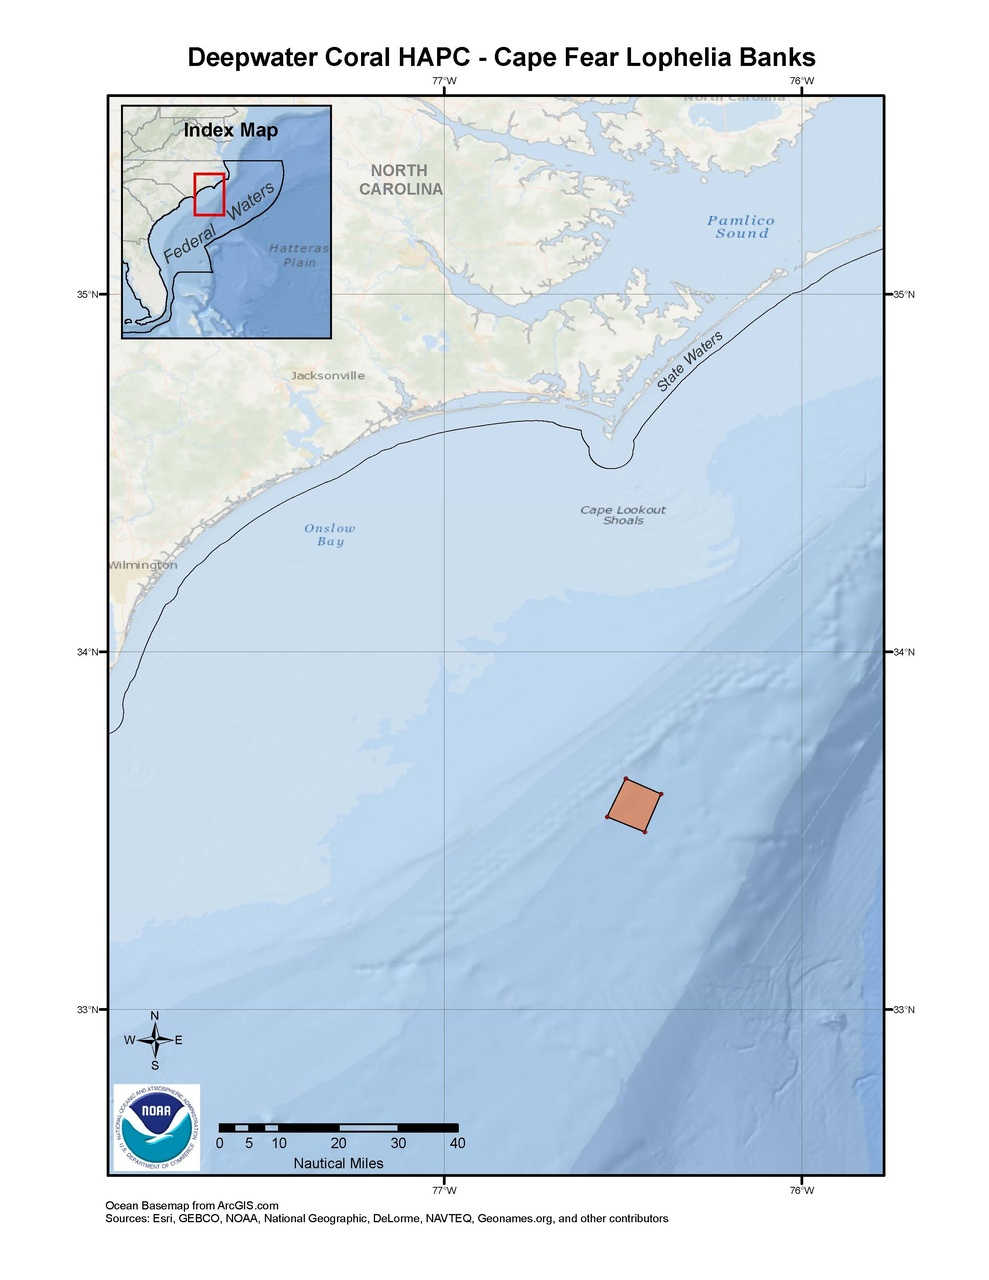 This is a map of the Cape Fear Lophelia Banks Deepwater Coral HAPC in the South Atlantic Region.ks